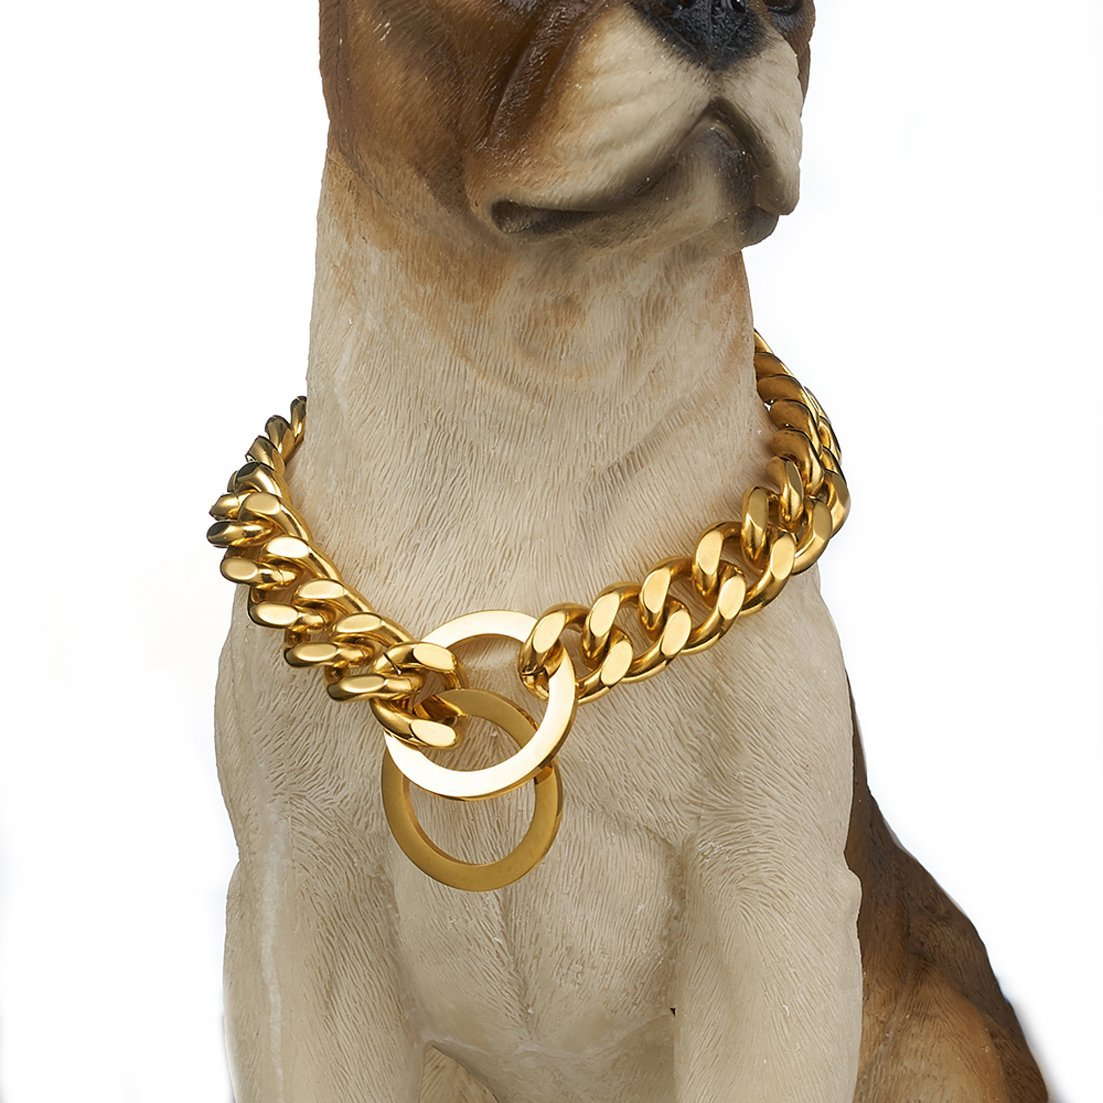 Granny Chic Strong Gold Tone 12/15mm Dog Collar Stainless Steel Pet Curb Chain Necklace(15mm,24inches)